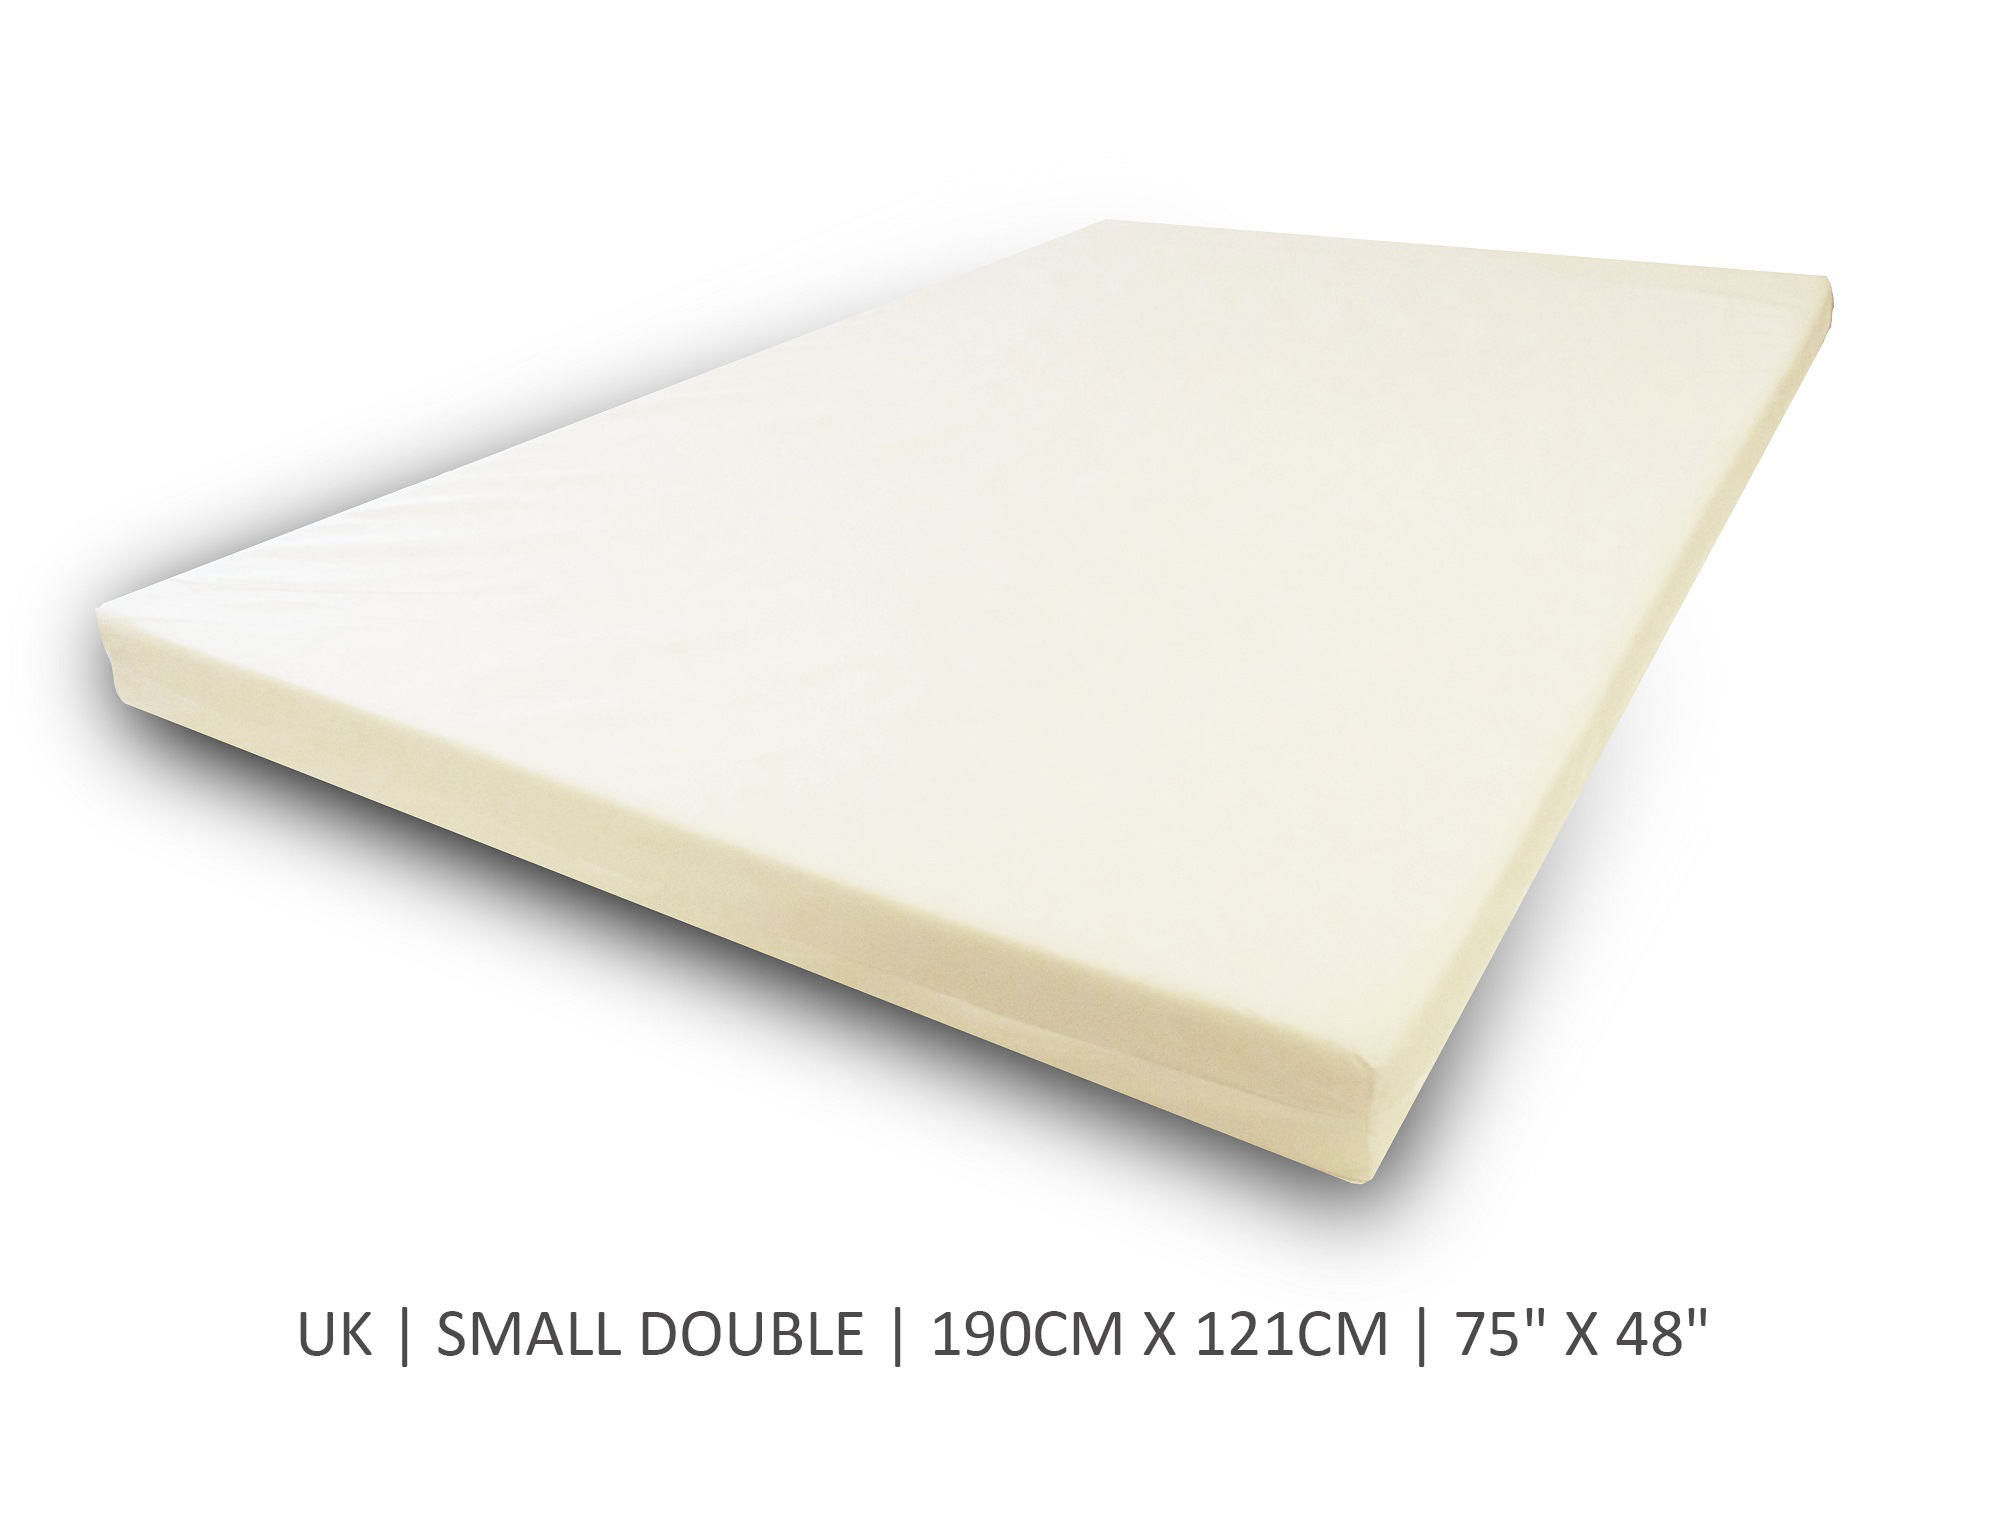 uk small double mattress topper replacement covers. Black Bedroom Furniture Sets. Home Design Ideas